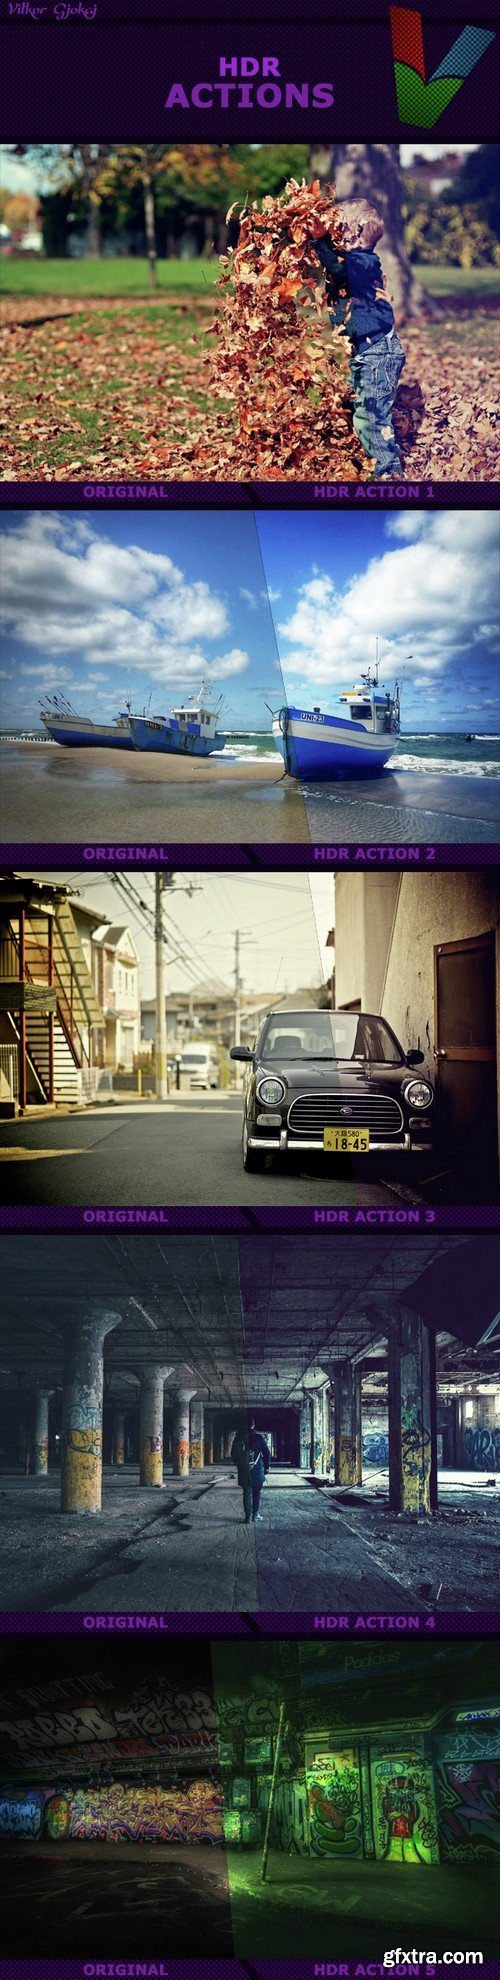 Graphicriver - HDR Actions I 14678630